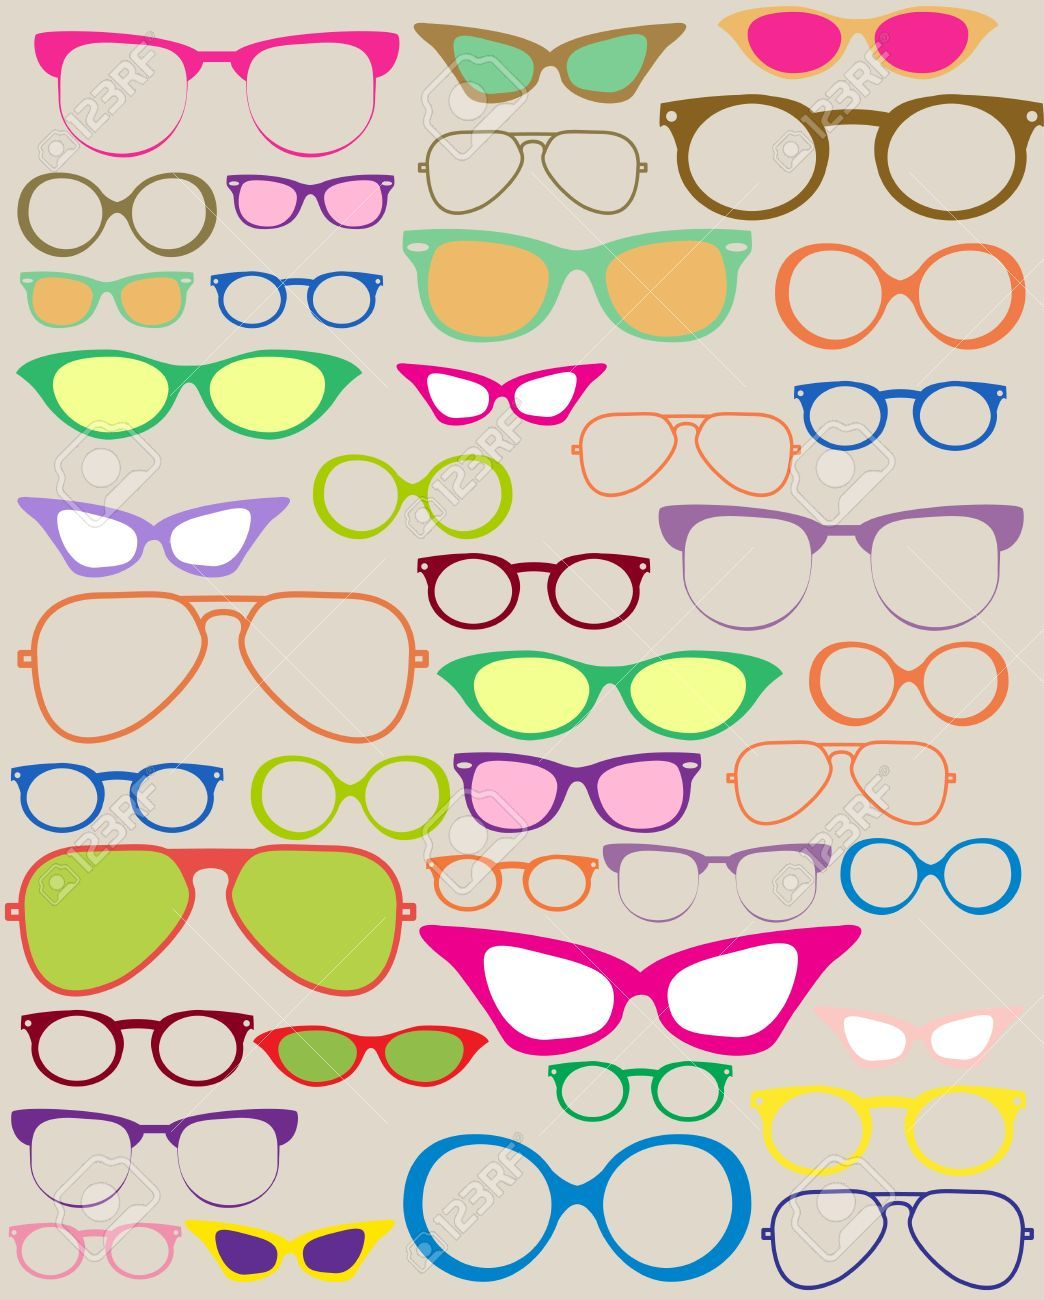 Stock Vector in 2019 | 2020 | Eyeglasses, Optical frames, Clipart images graphic library stock